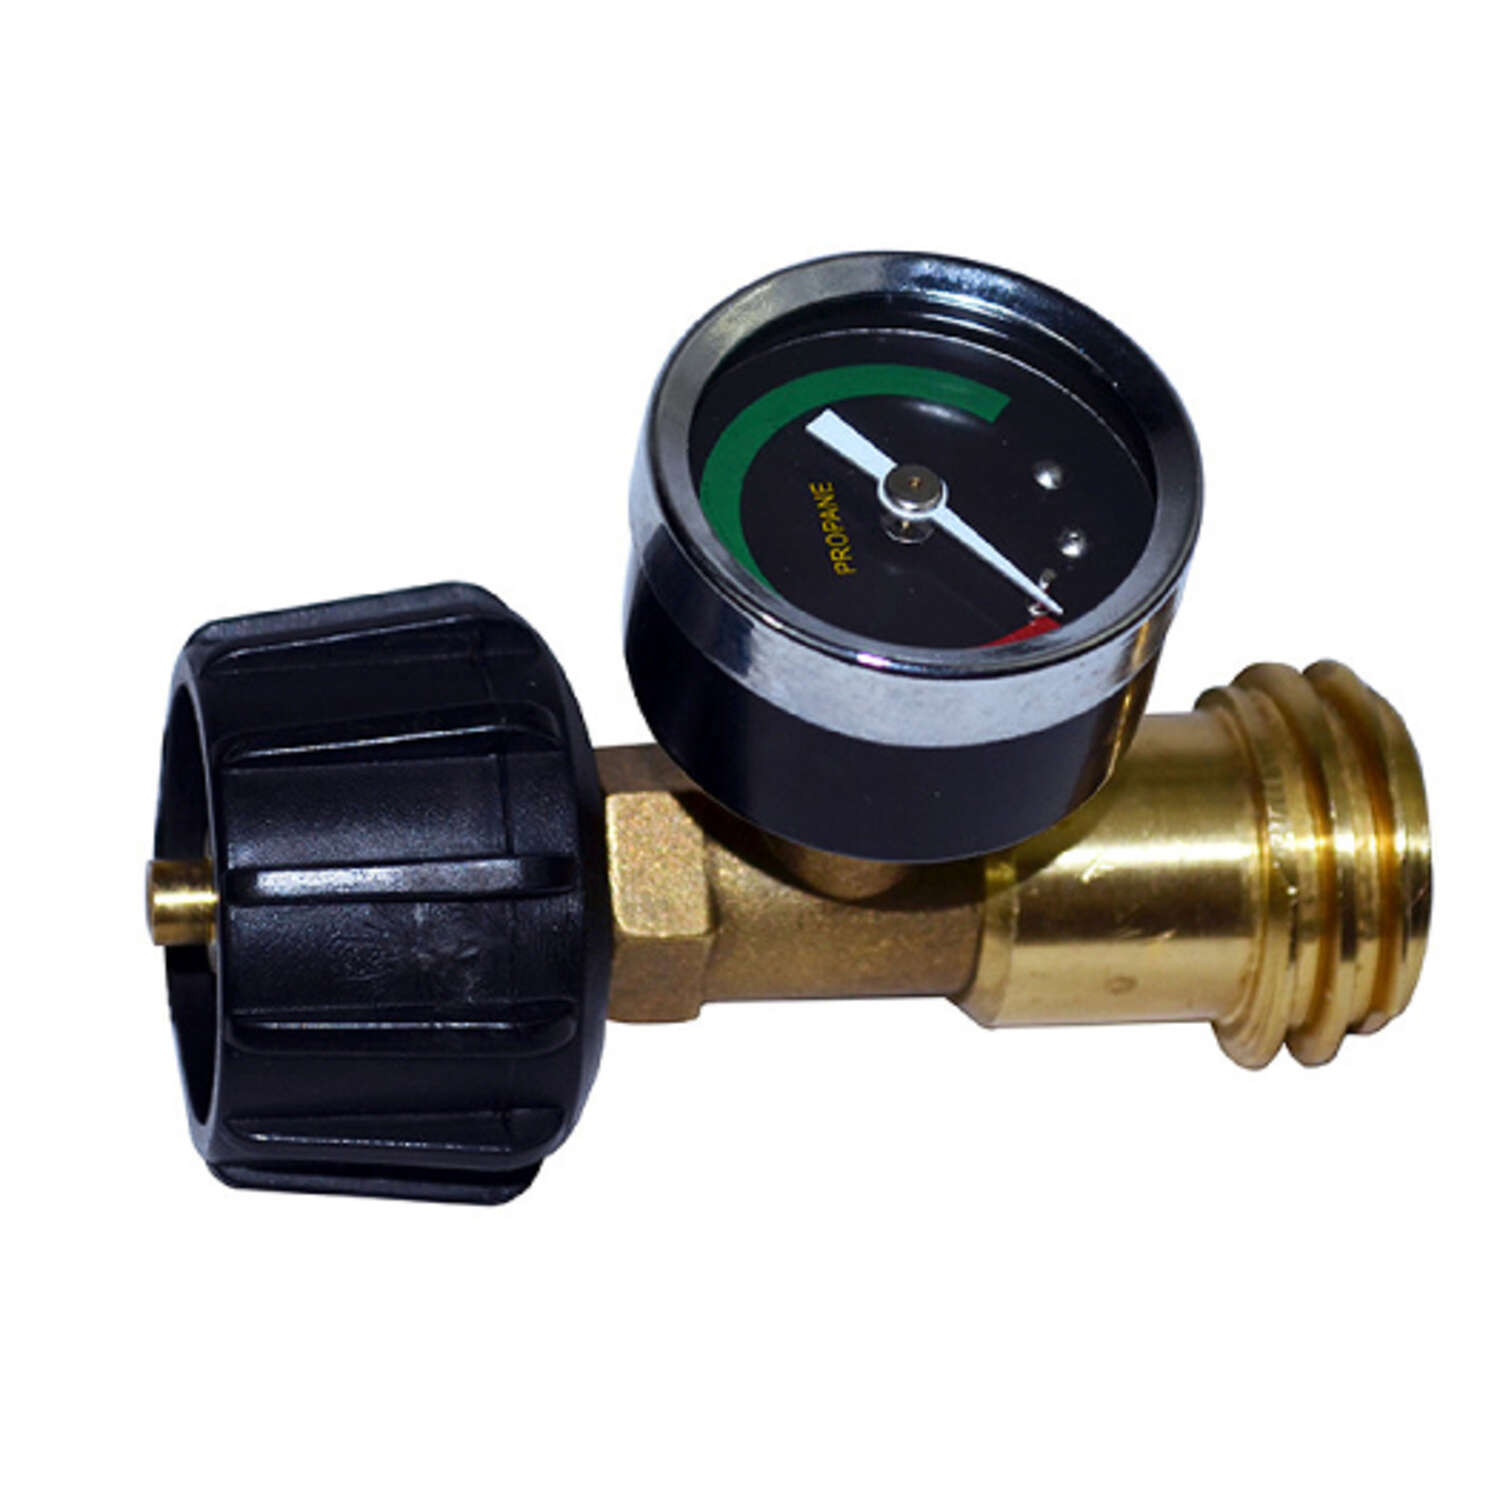 Mr. Heater  Brass/Plastic  Propane Gauge / Leak Detector